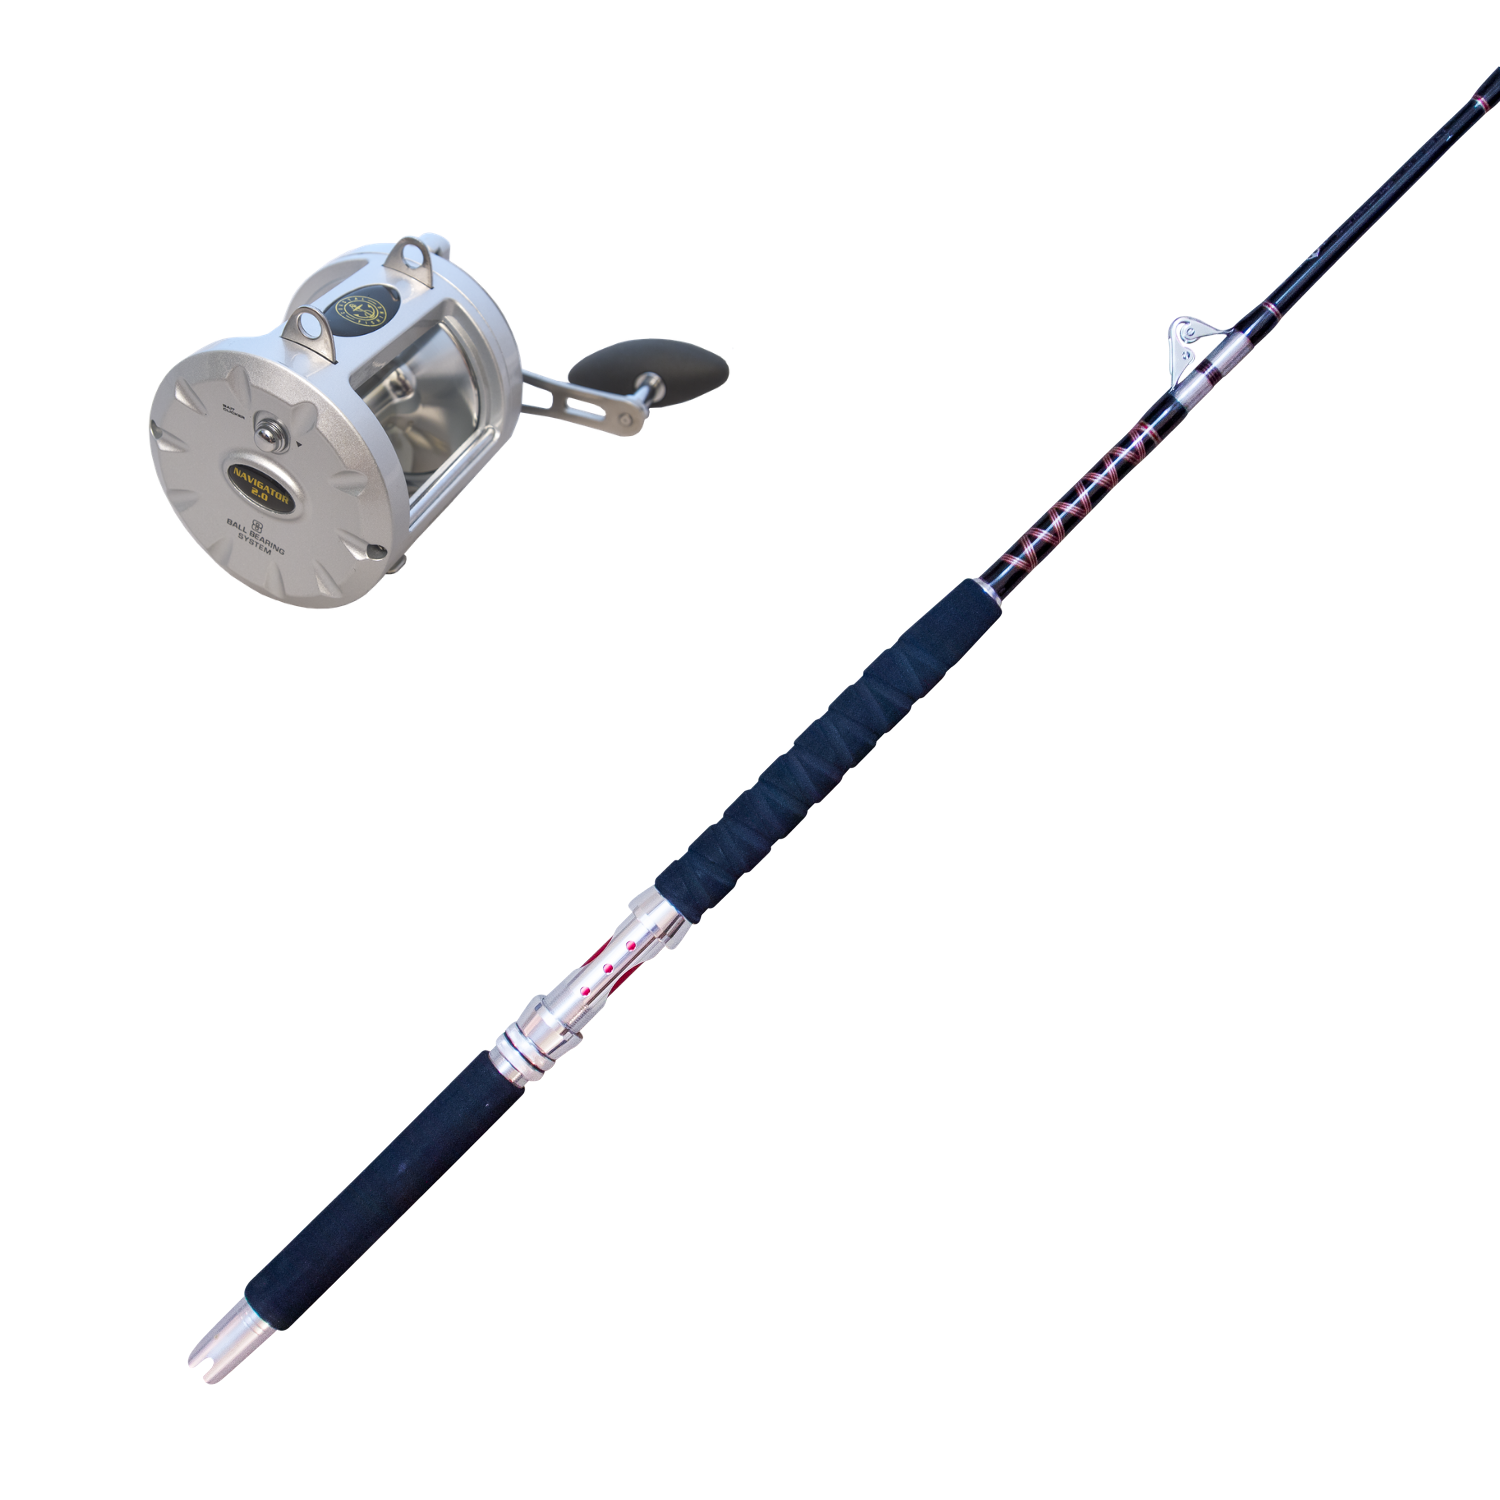 Thon Combo   100 - 120 lb (environ 54.43 kg) HolFaible Roller Rod-Standup & Trolling